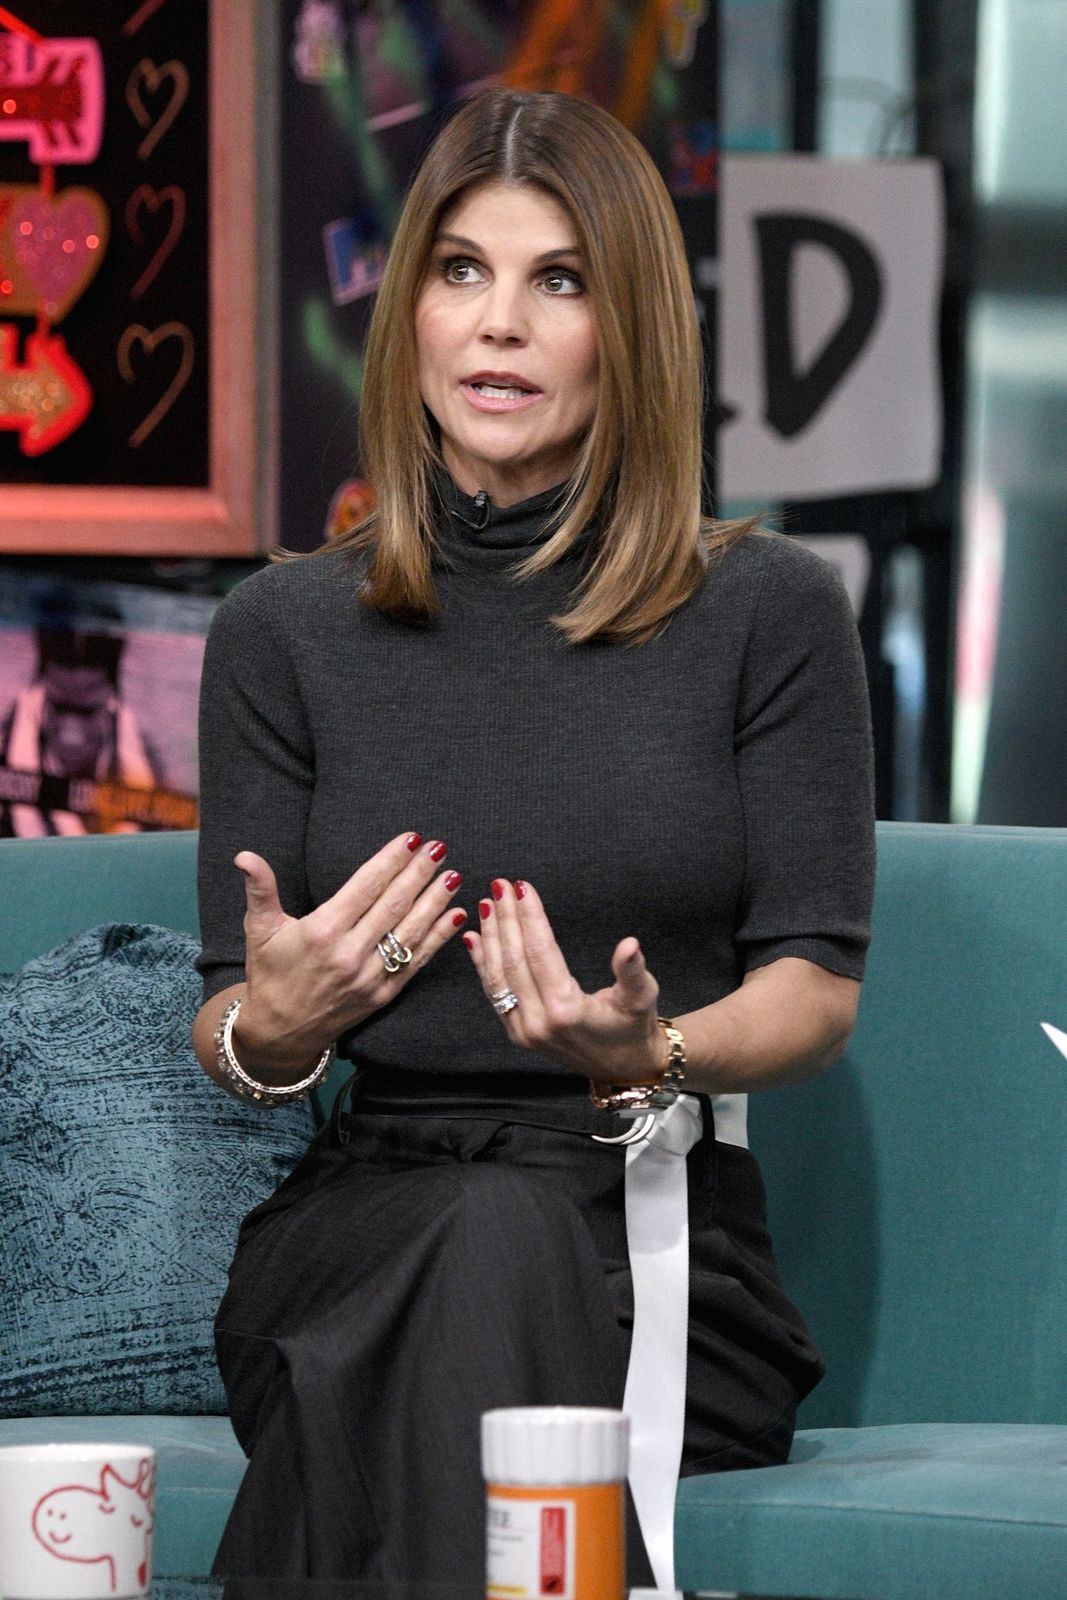 """Lori Loughlin visits the Build Brunch to discuss the Hallmark Channel TV series """"When Calls the Heart""""at Build Studio on February 14, 2019, in New York City 